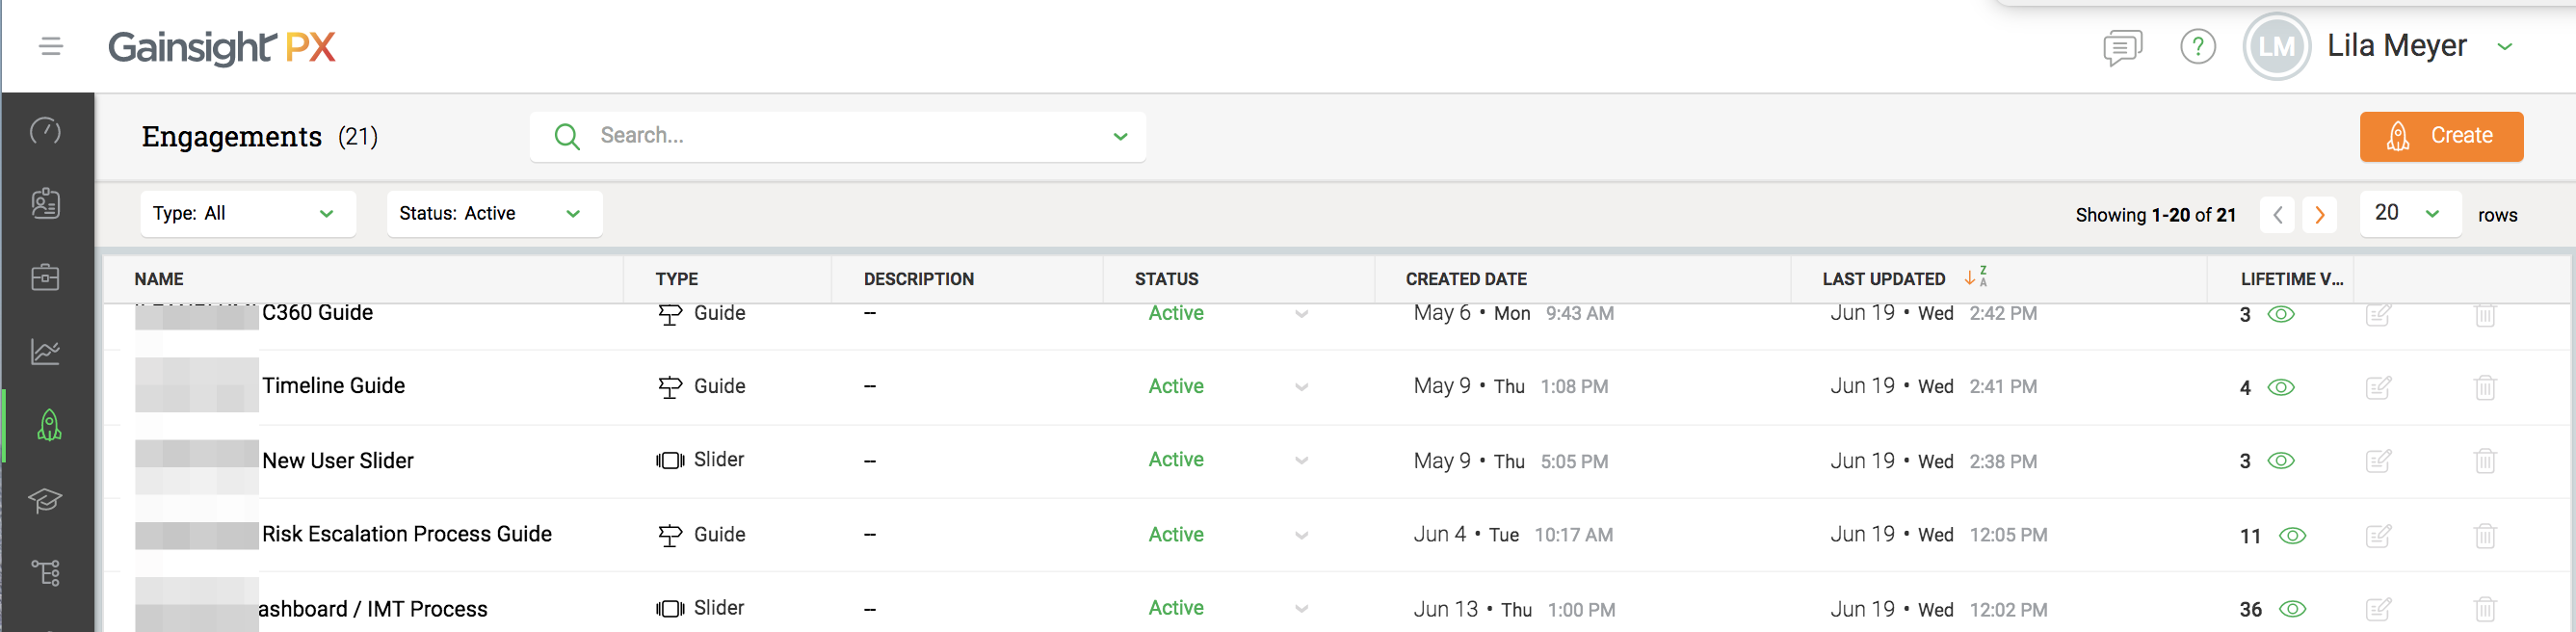 PX: Add Location or Page to Engagements List View | Gainsight Community